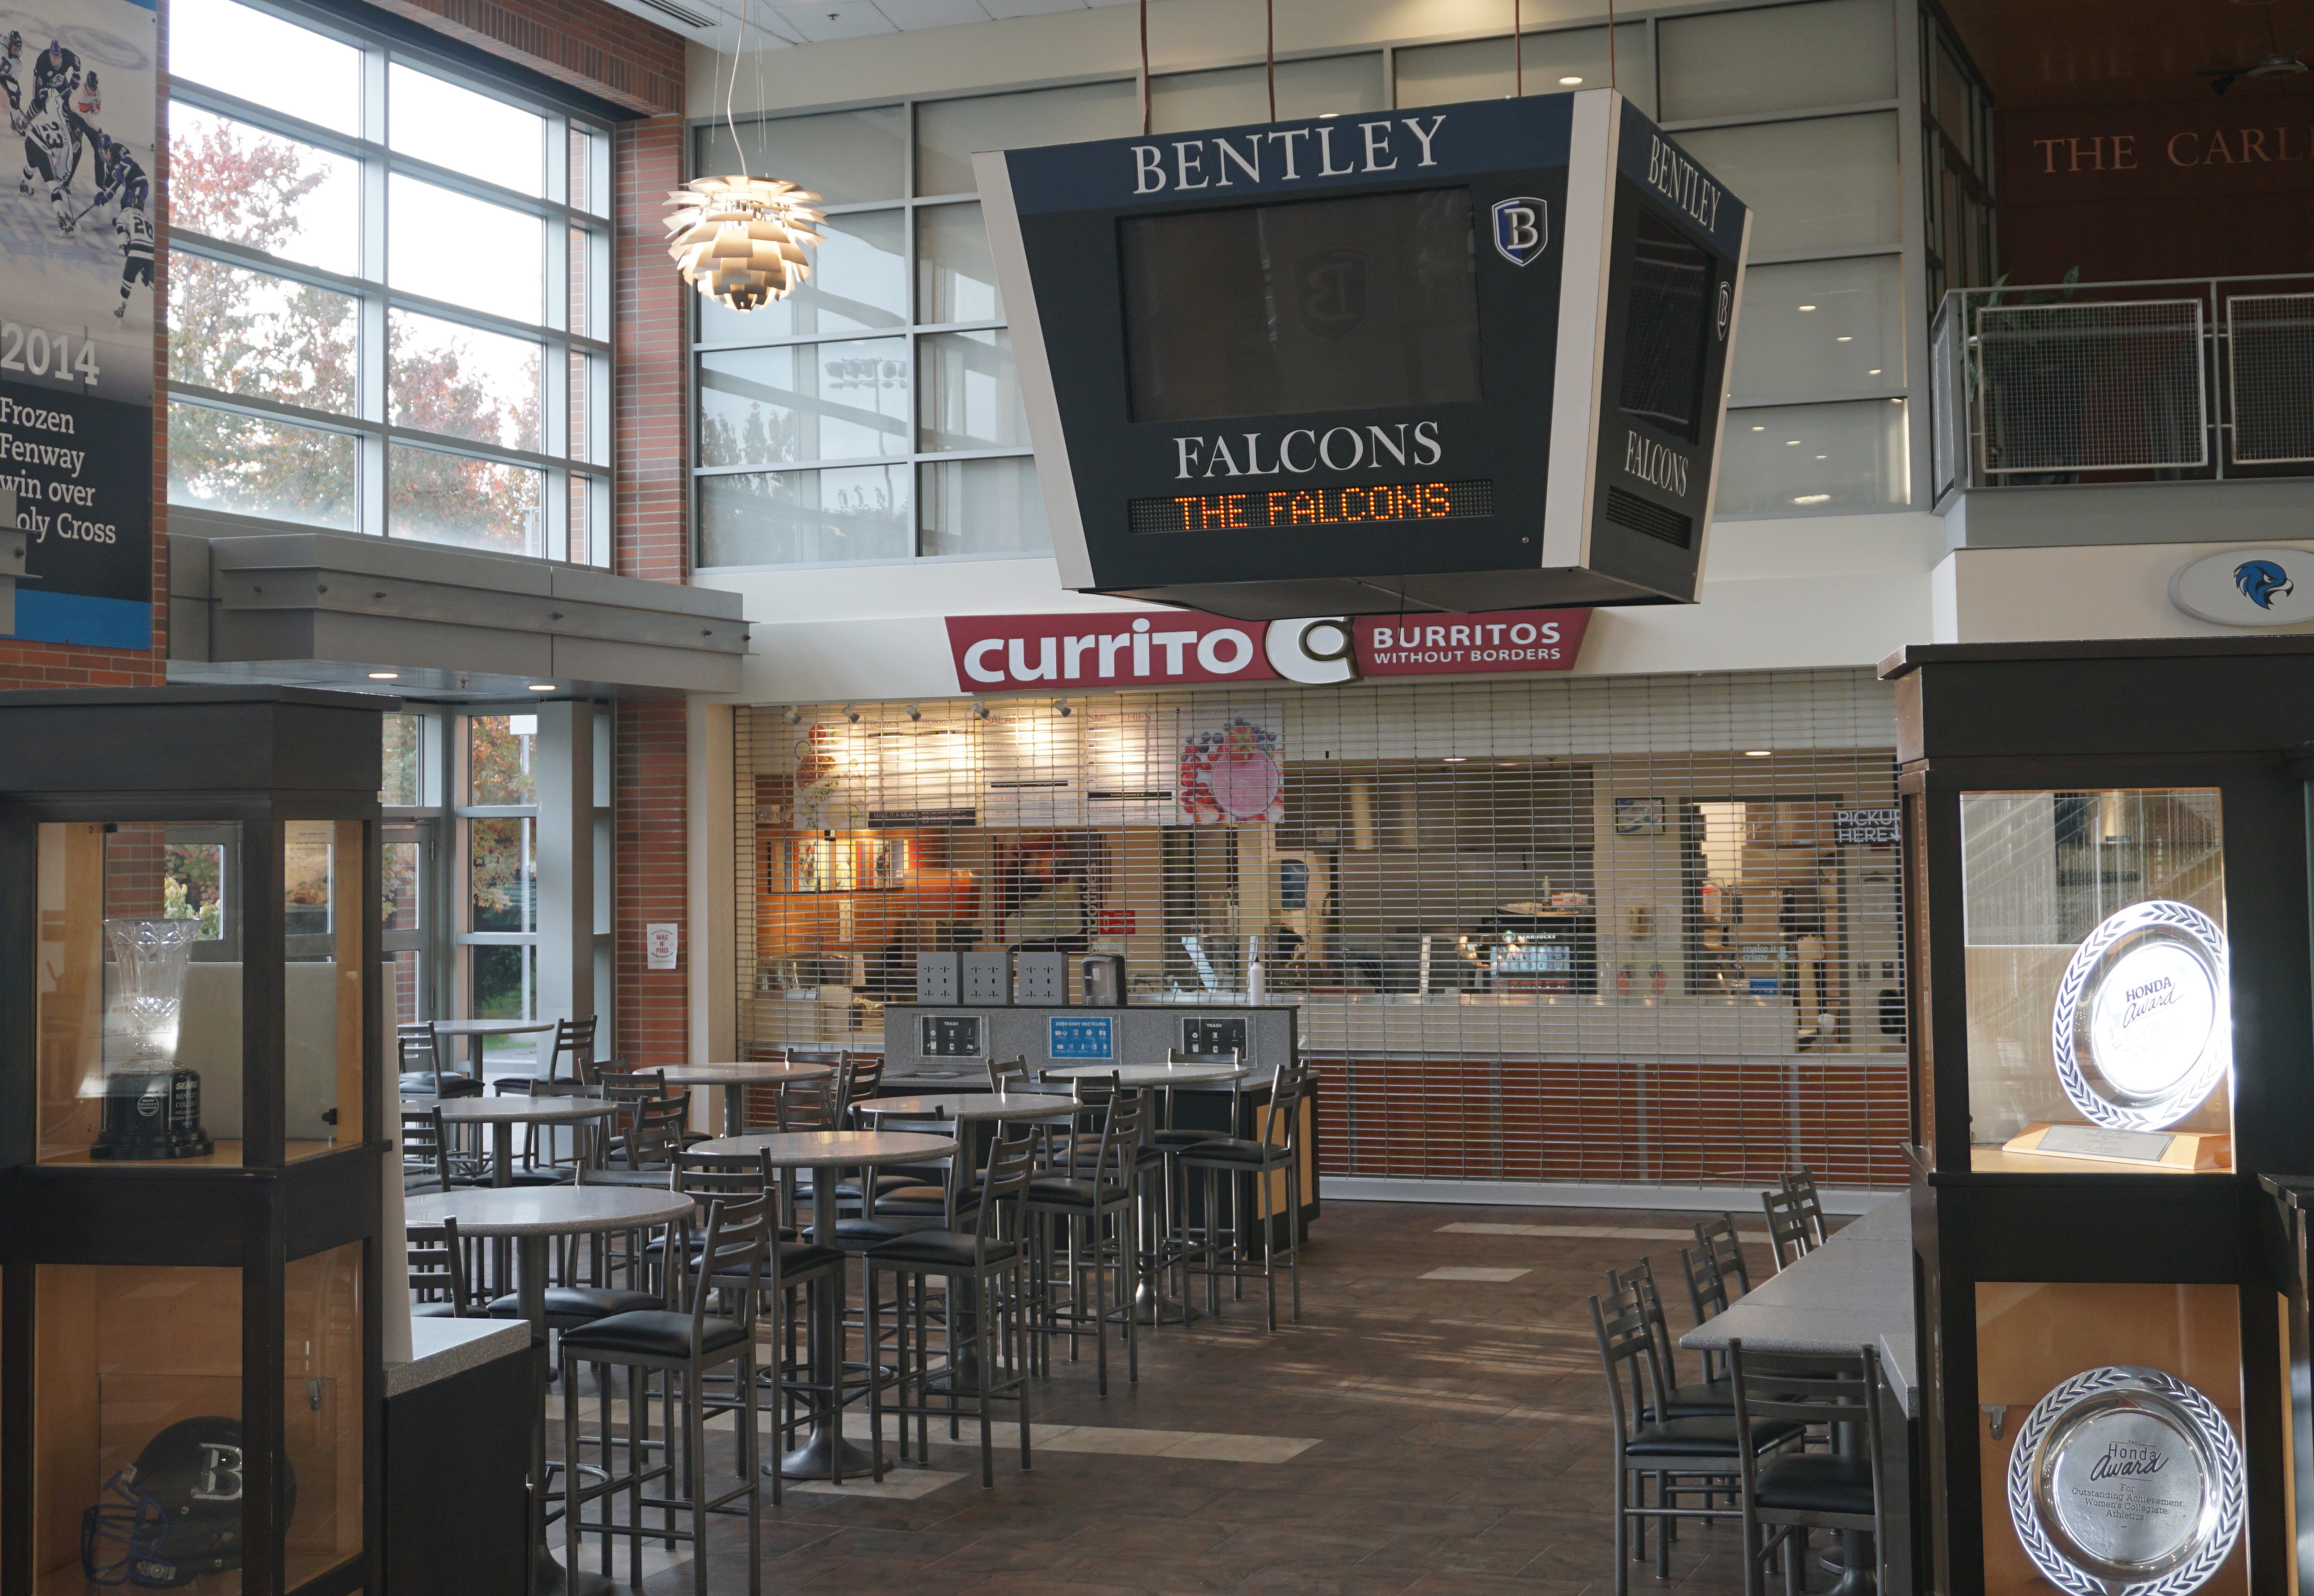 Cafe and coffee shop in Bentley University gym